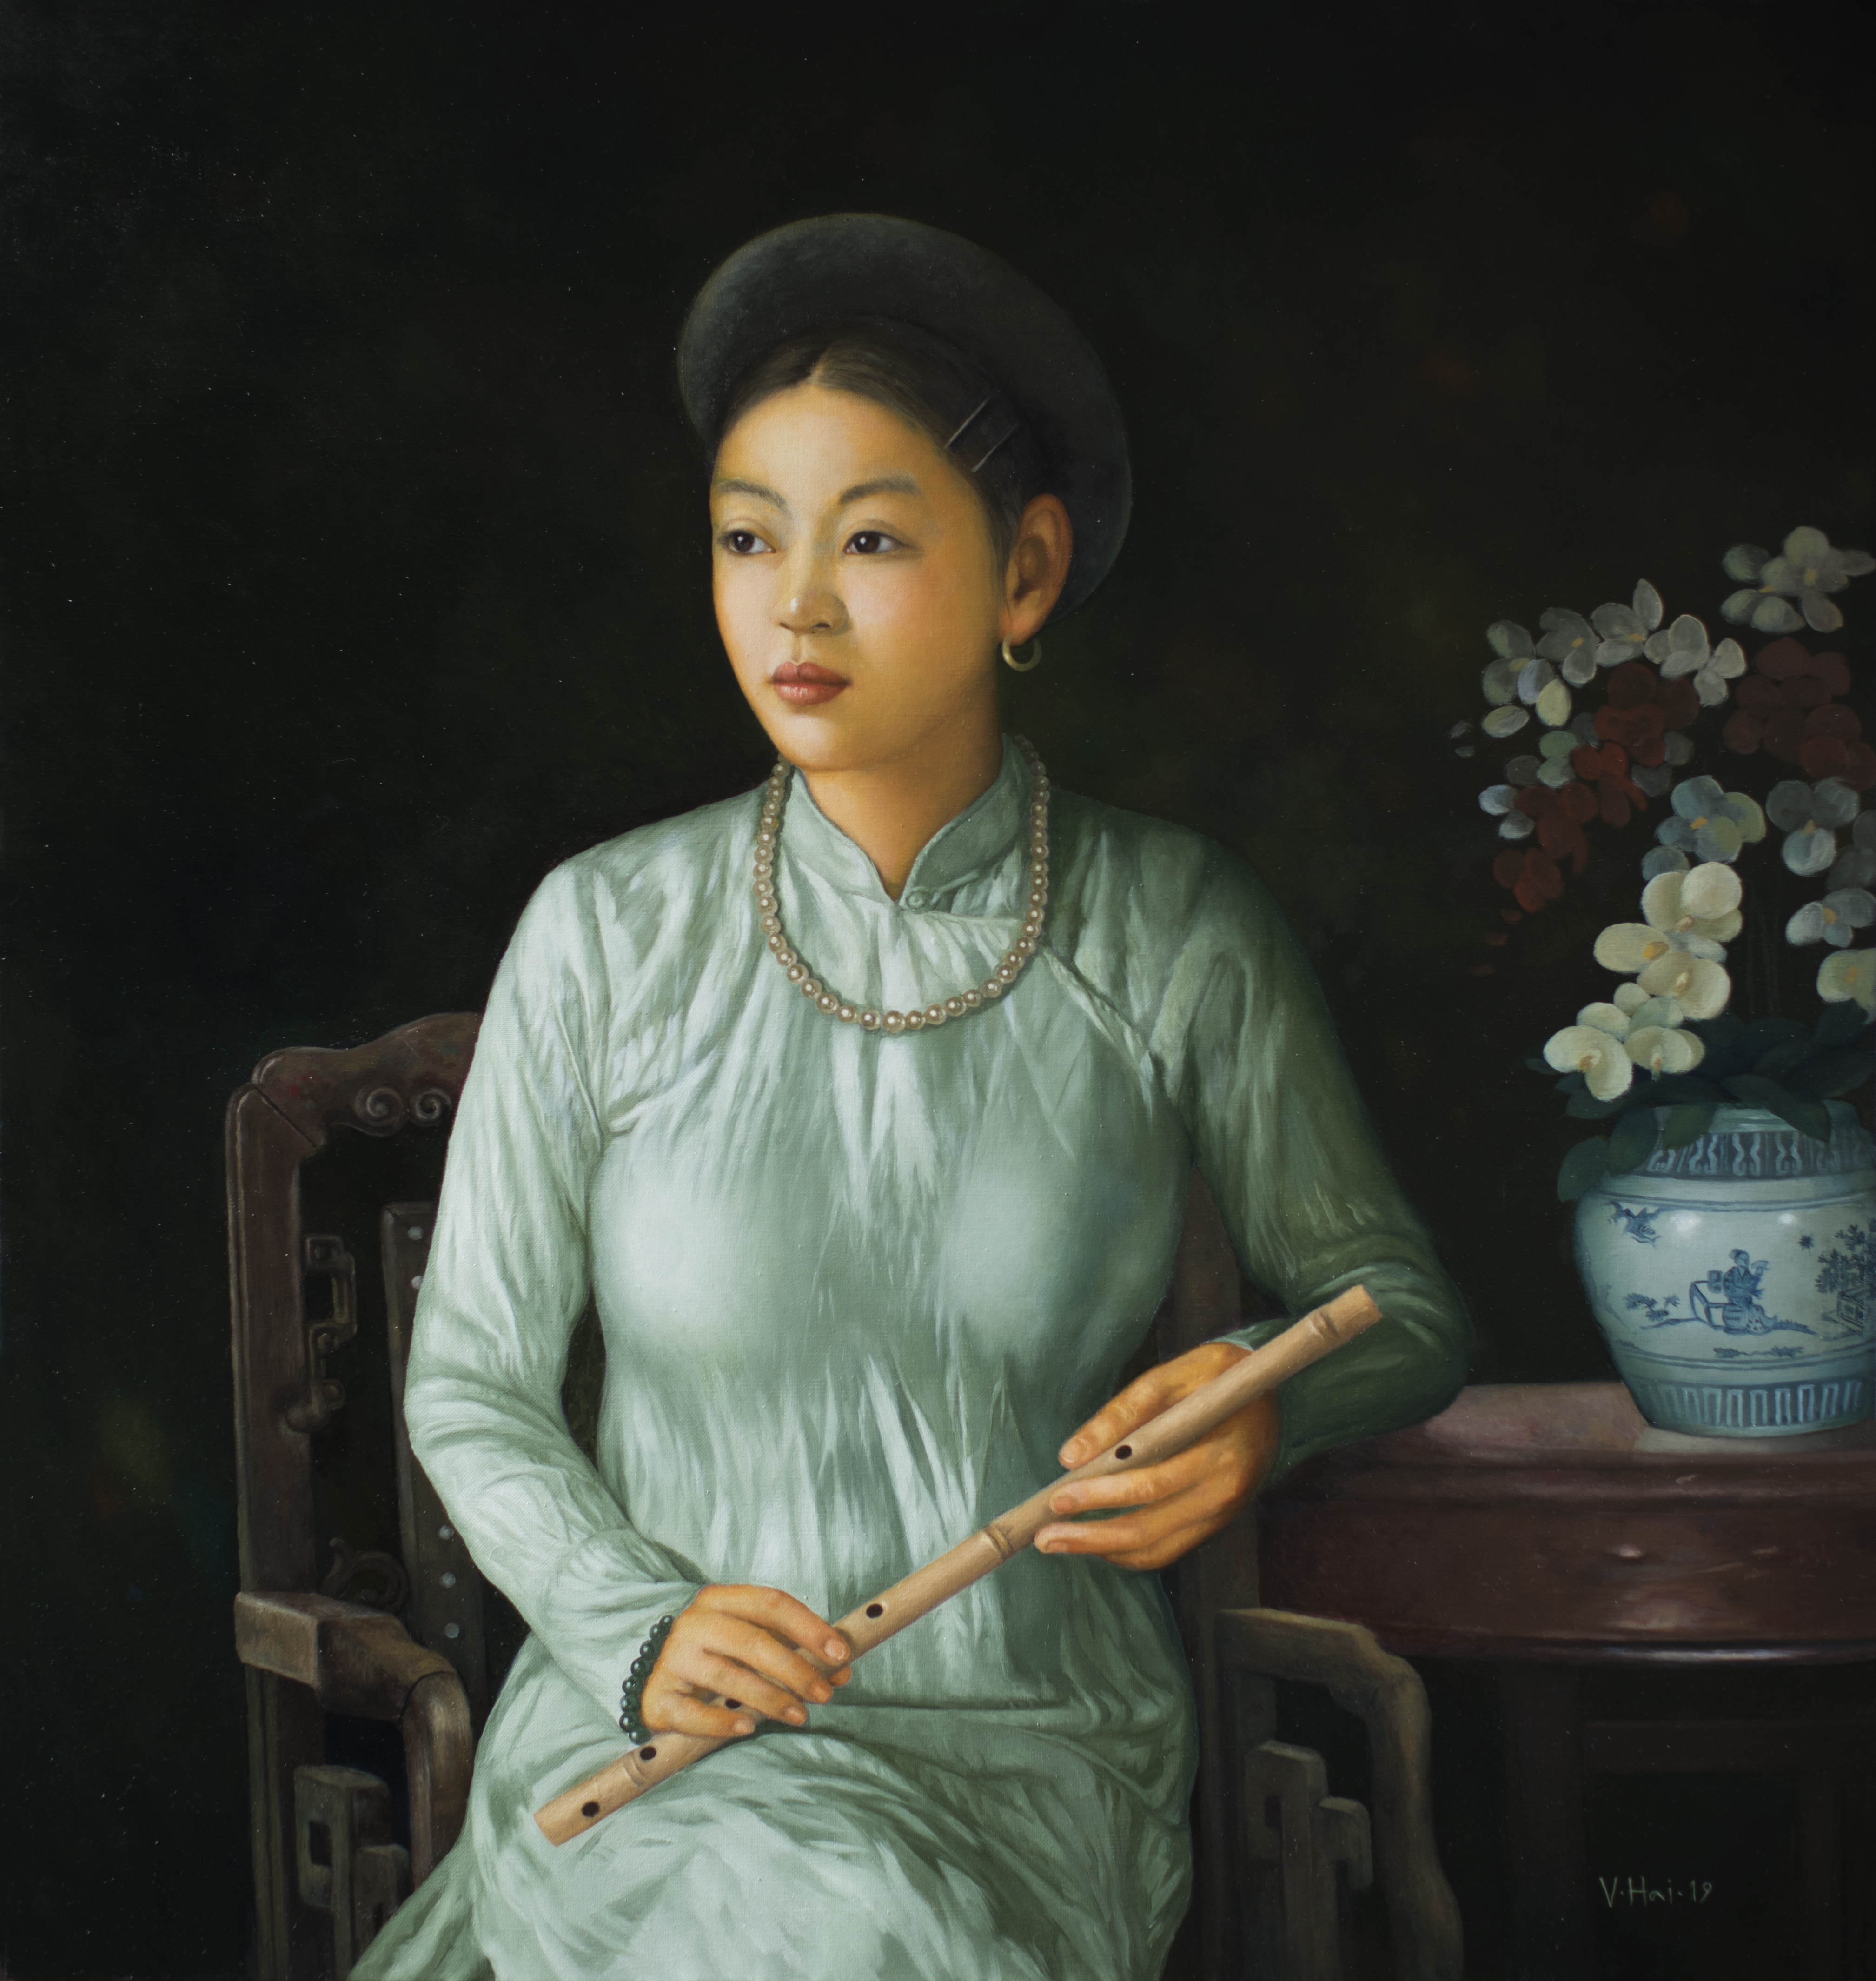 Girl with the flute 02